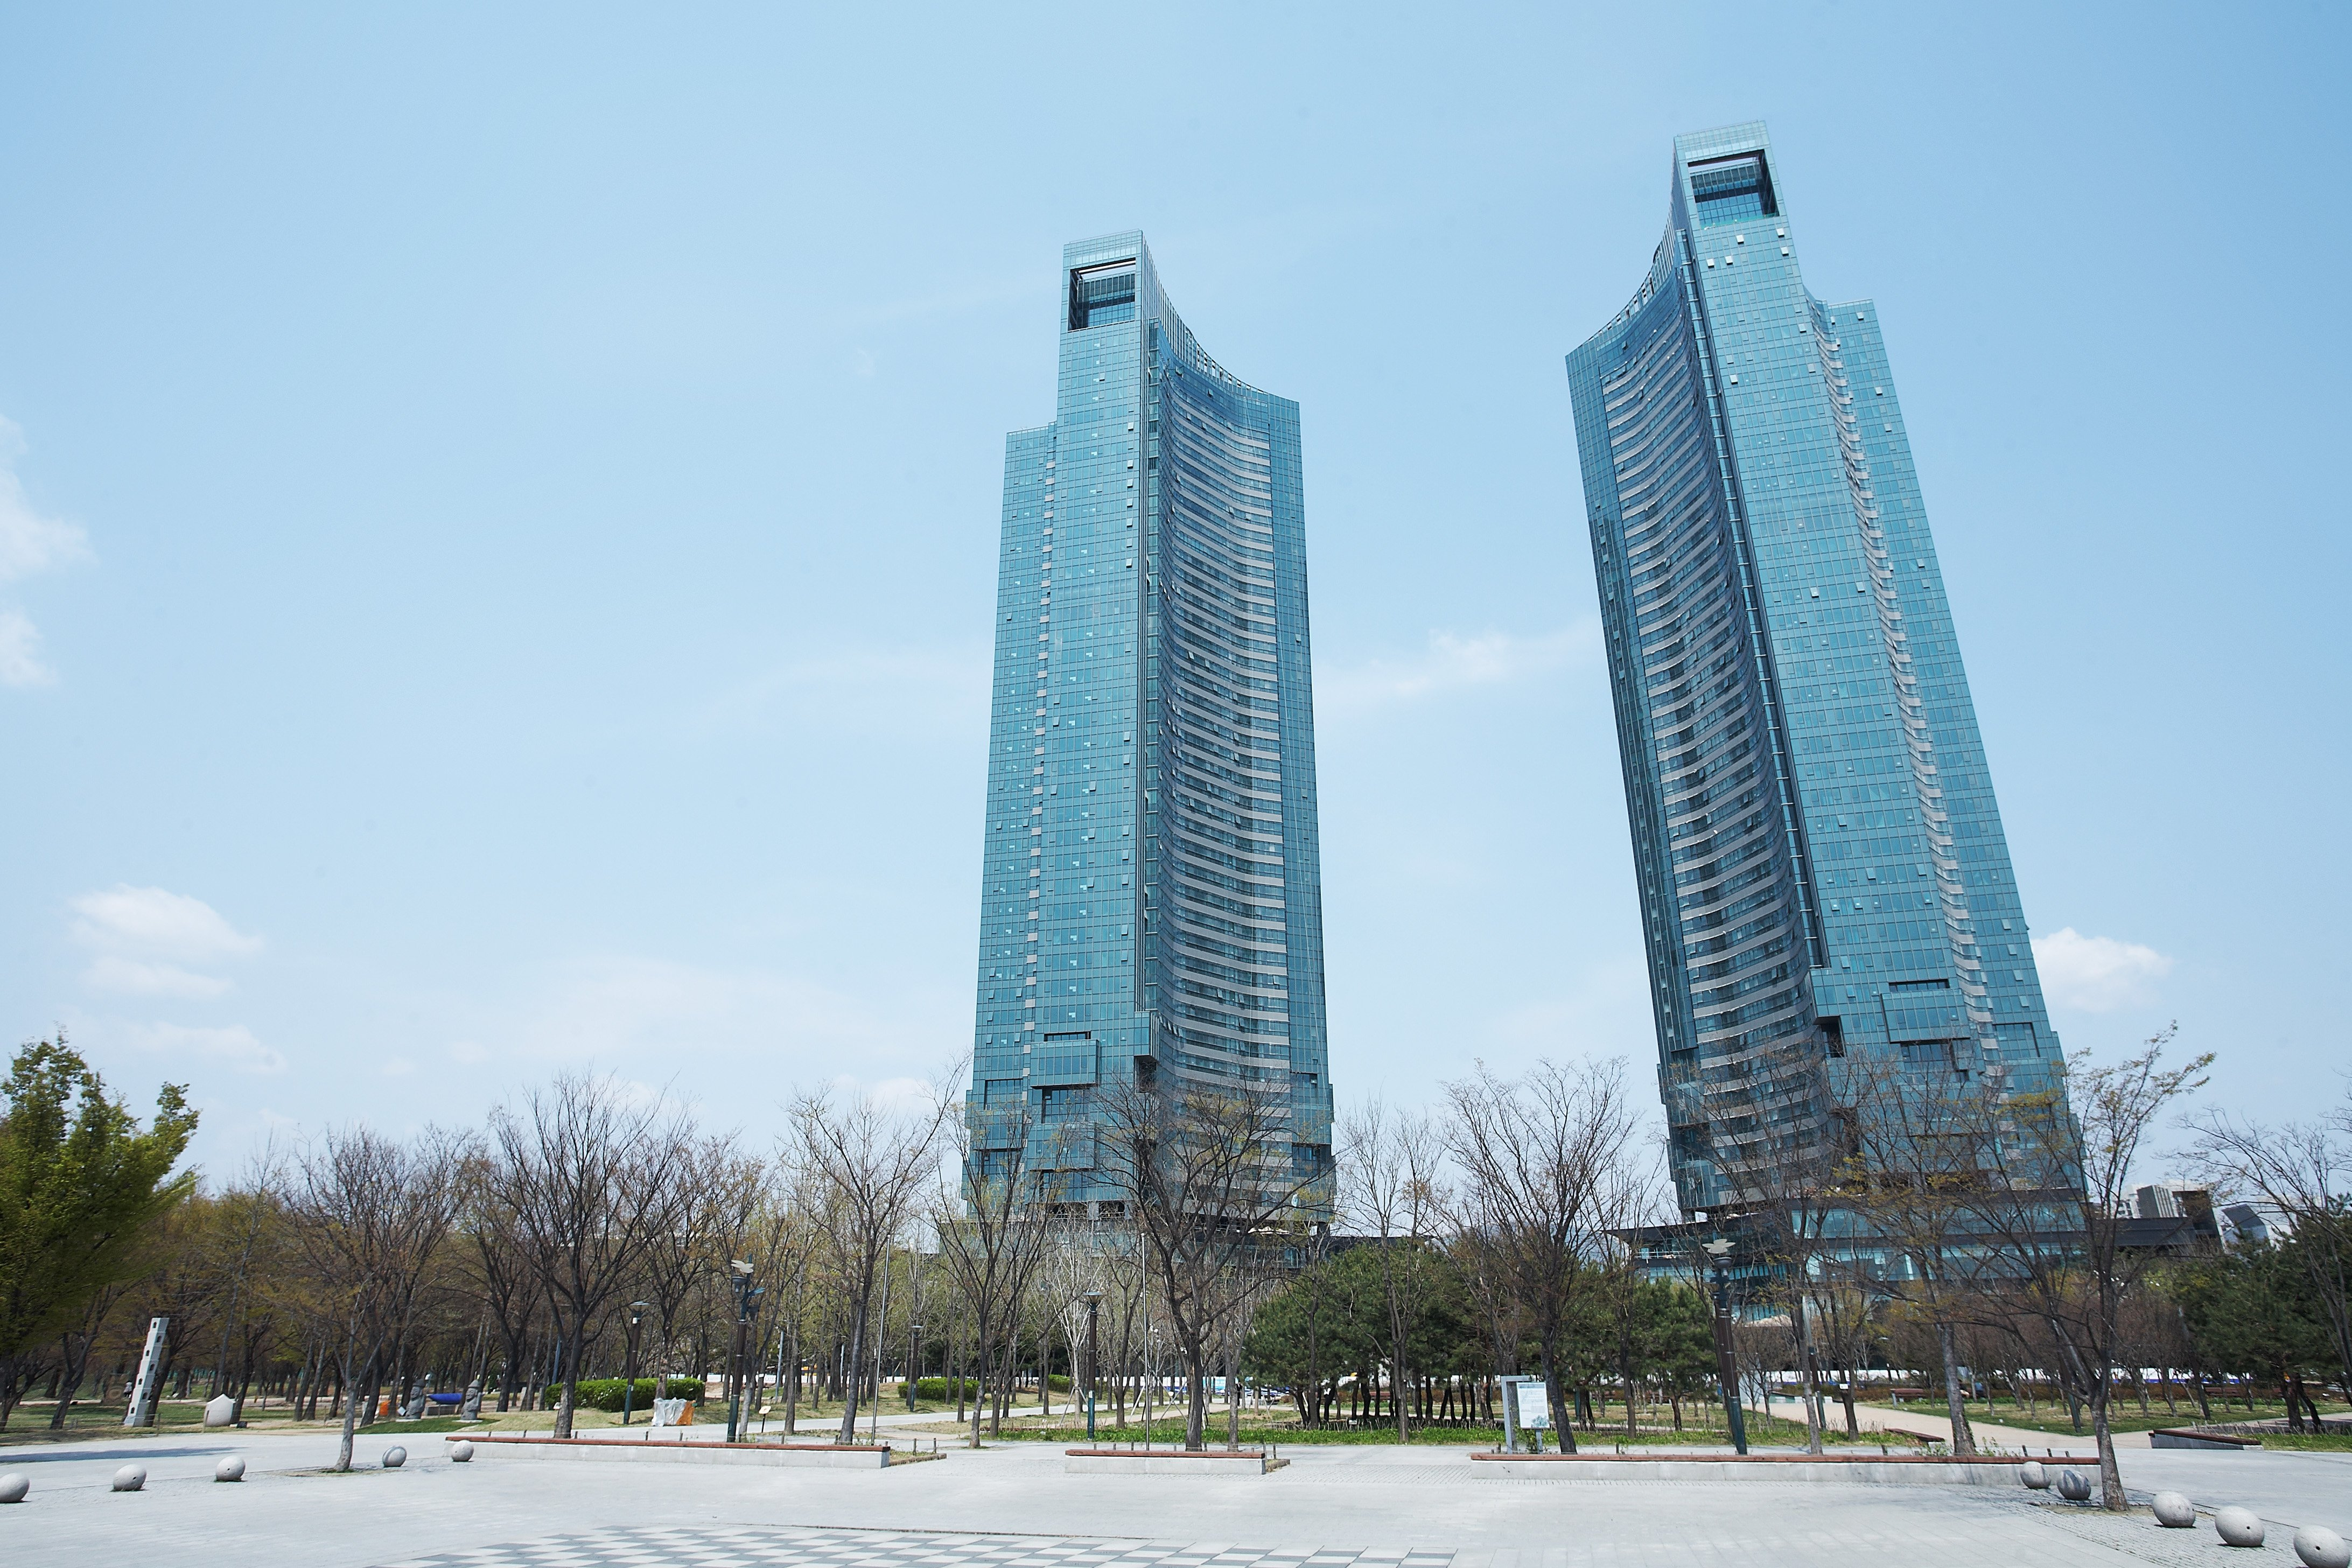 Many Korean Celebrities Live Here Such As G Dragon Kim Soo Hyun Lee Man And Even Han Ye Seul